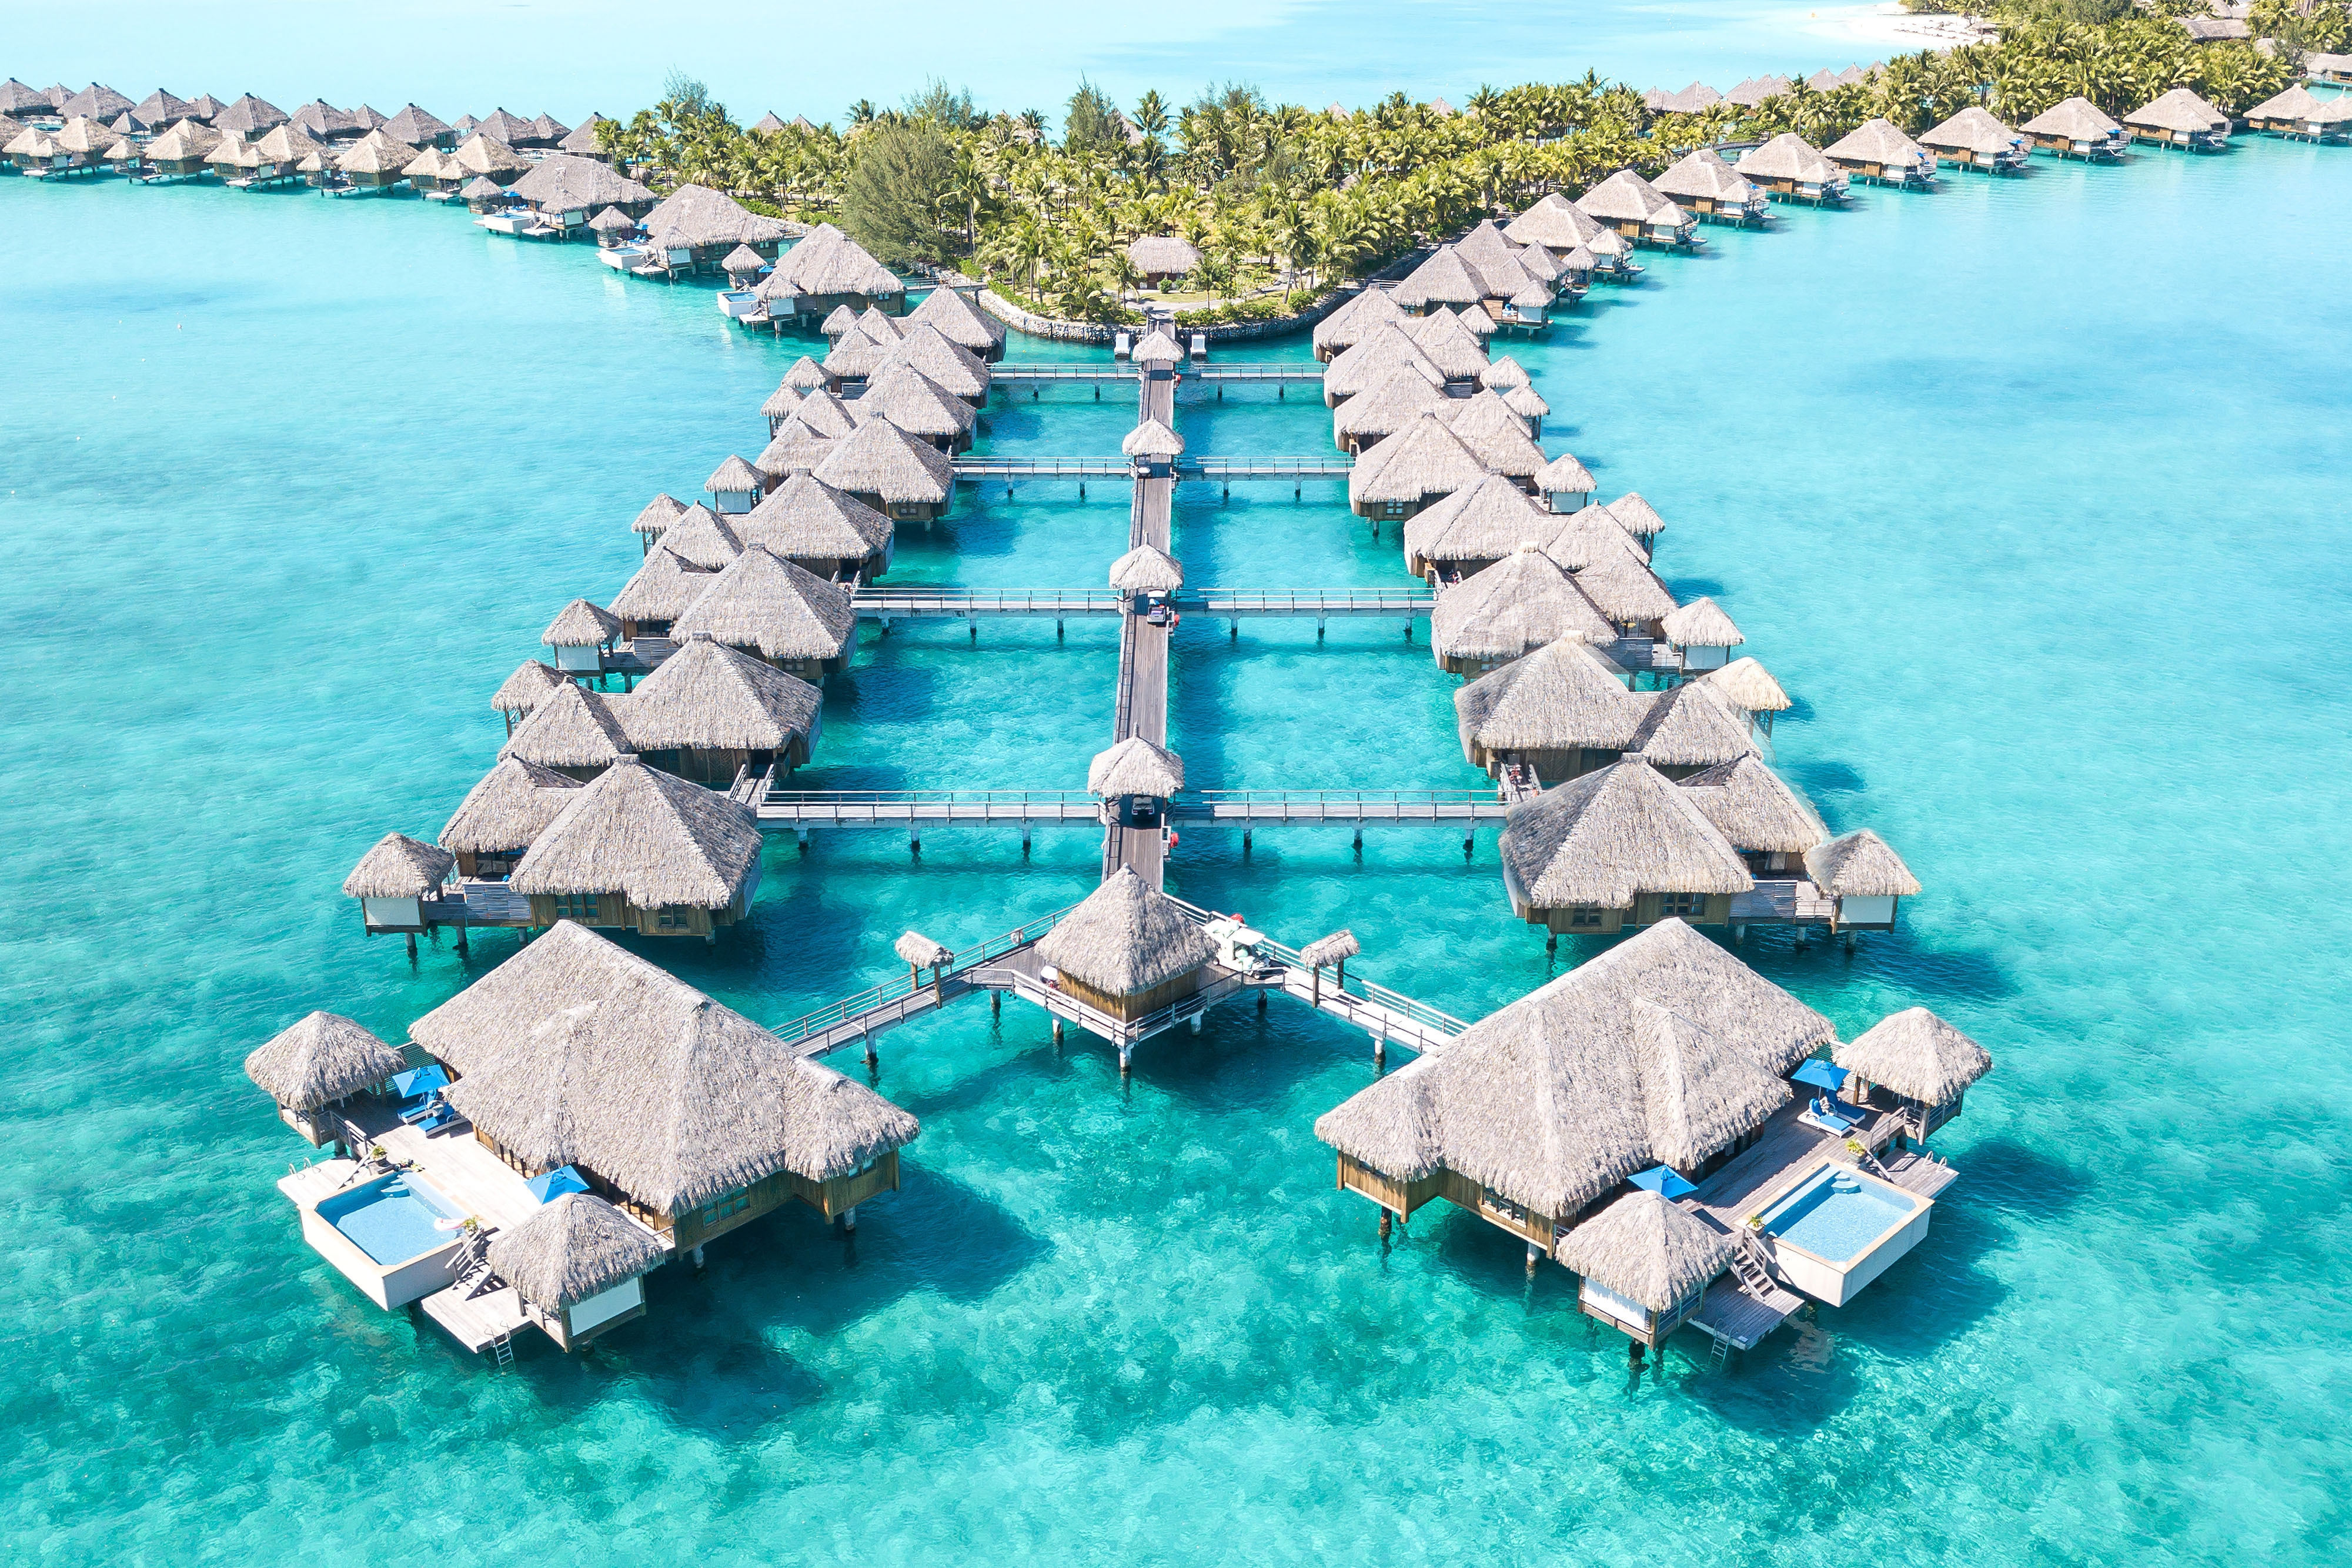 Best Luxury Marriott Bonvoy Category 8 Hotels and Resorts To Use Marriott Free Night Certificate 85k